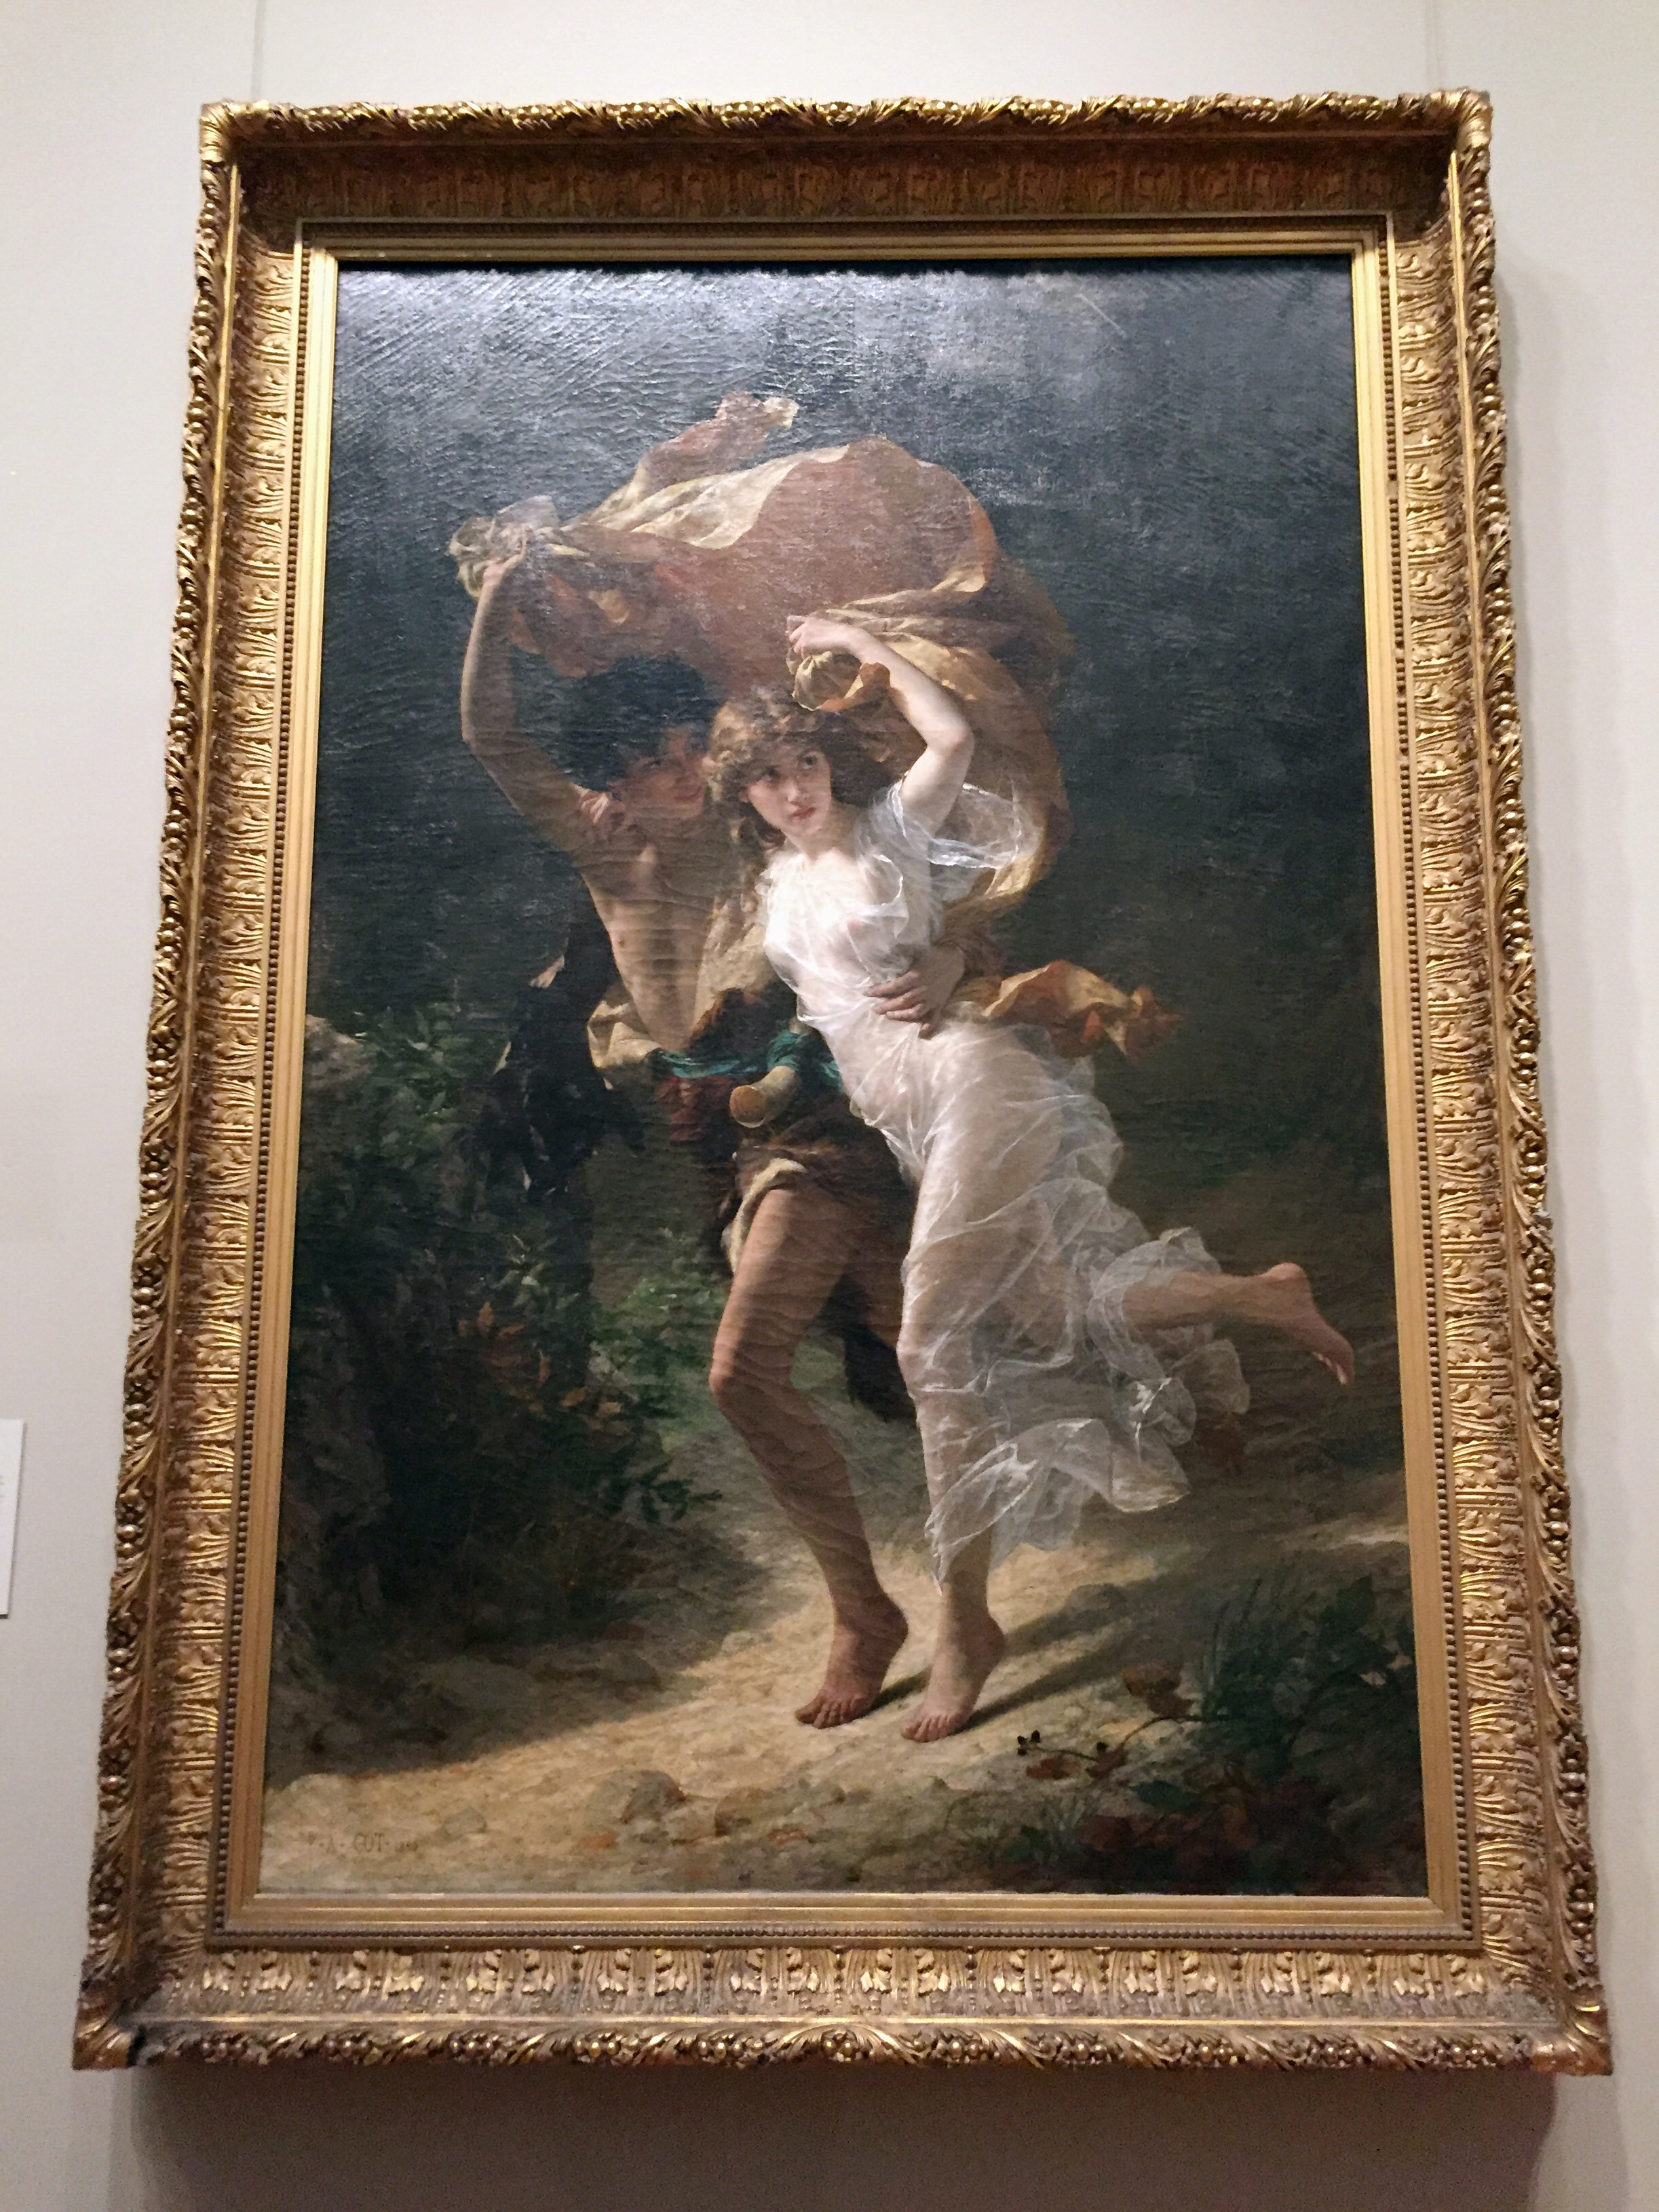 The Storm .  Pierre-Auguste Cot . (French, Bédarieux 1837–1883 Paris) 1880. Oil on canvas.